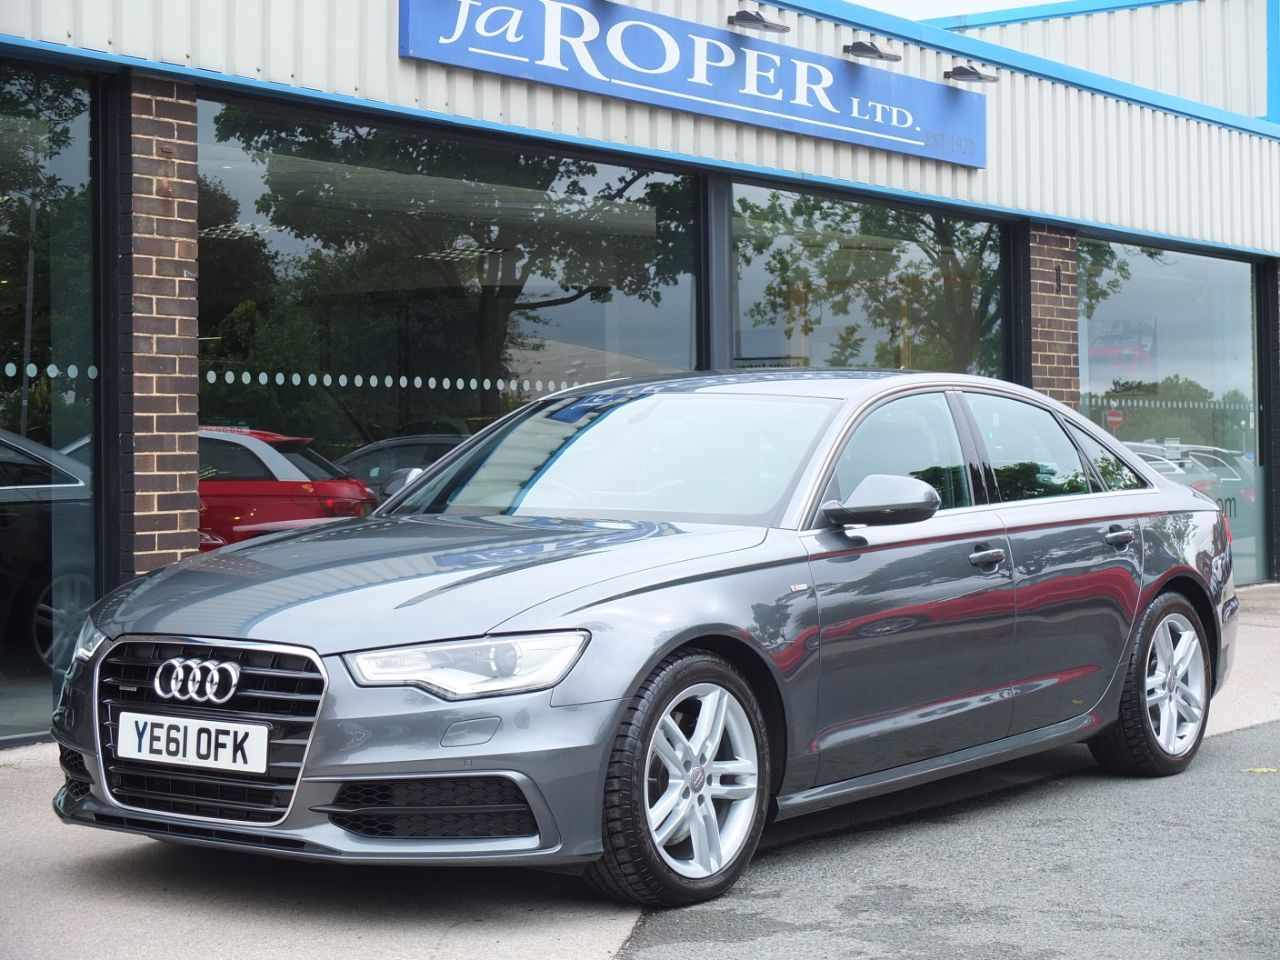 Audi A6 3.0 TDI quattro S Line S Tronic 245ps Tech Pack Saloon Diesel Daytona Grey MetallicAudi A6 3.0 TDI quattro S Line S Tronic 245ps Tech Pack Saloon Diesel Daytona Grey Metallic at fa Roper Ltd Bradford